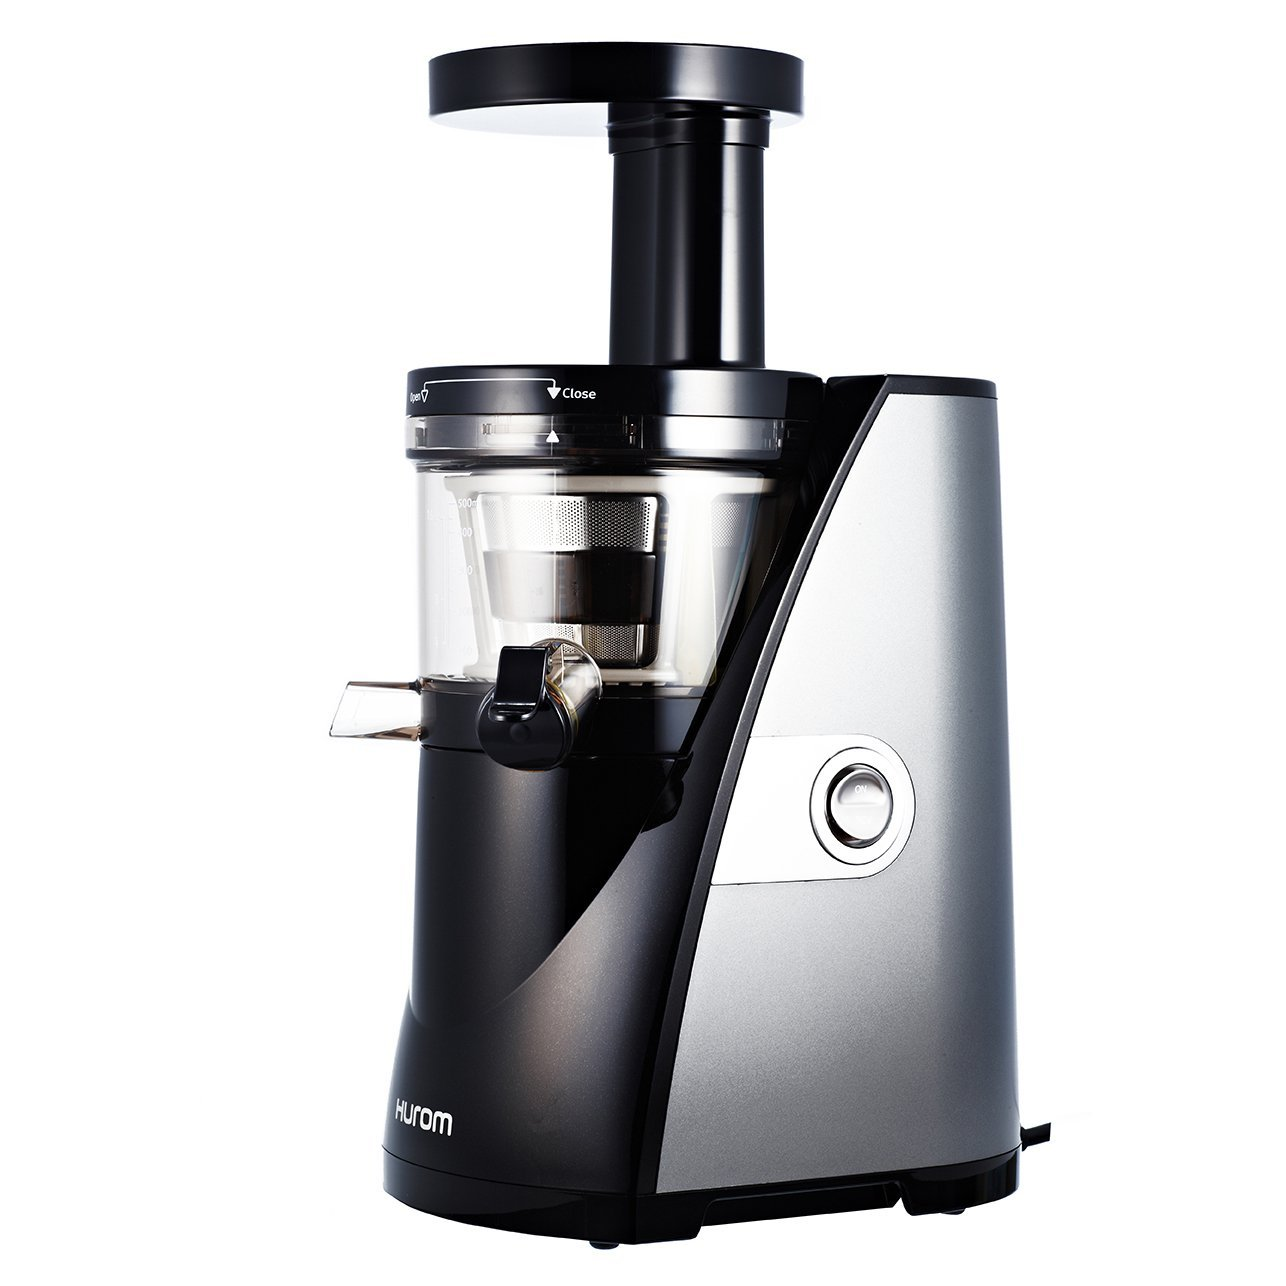 Homemaker Slow Juicer Review : 5 Best Hurom Juicer Reviews UPDATED: 2018 The Home Savant